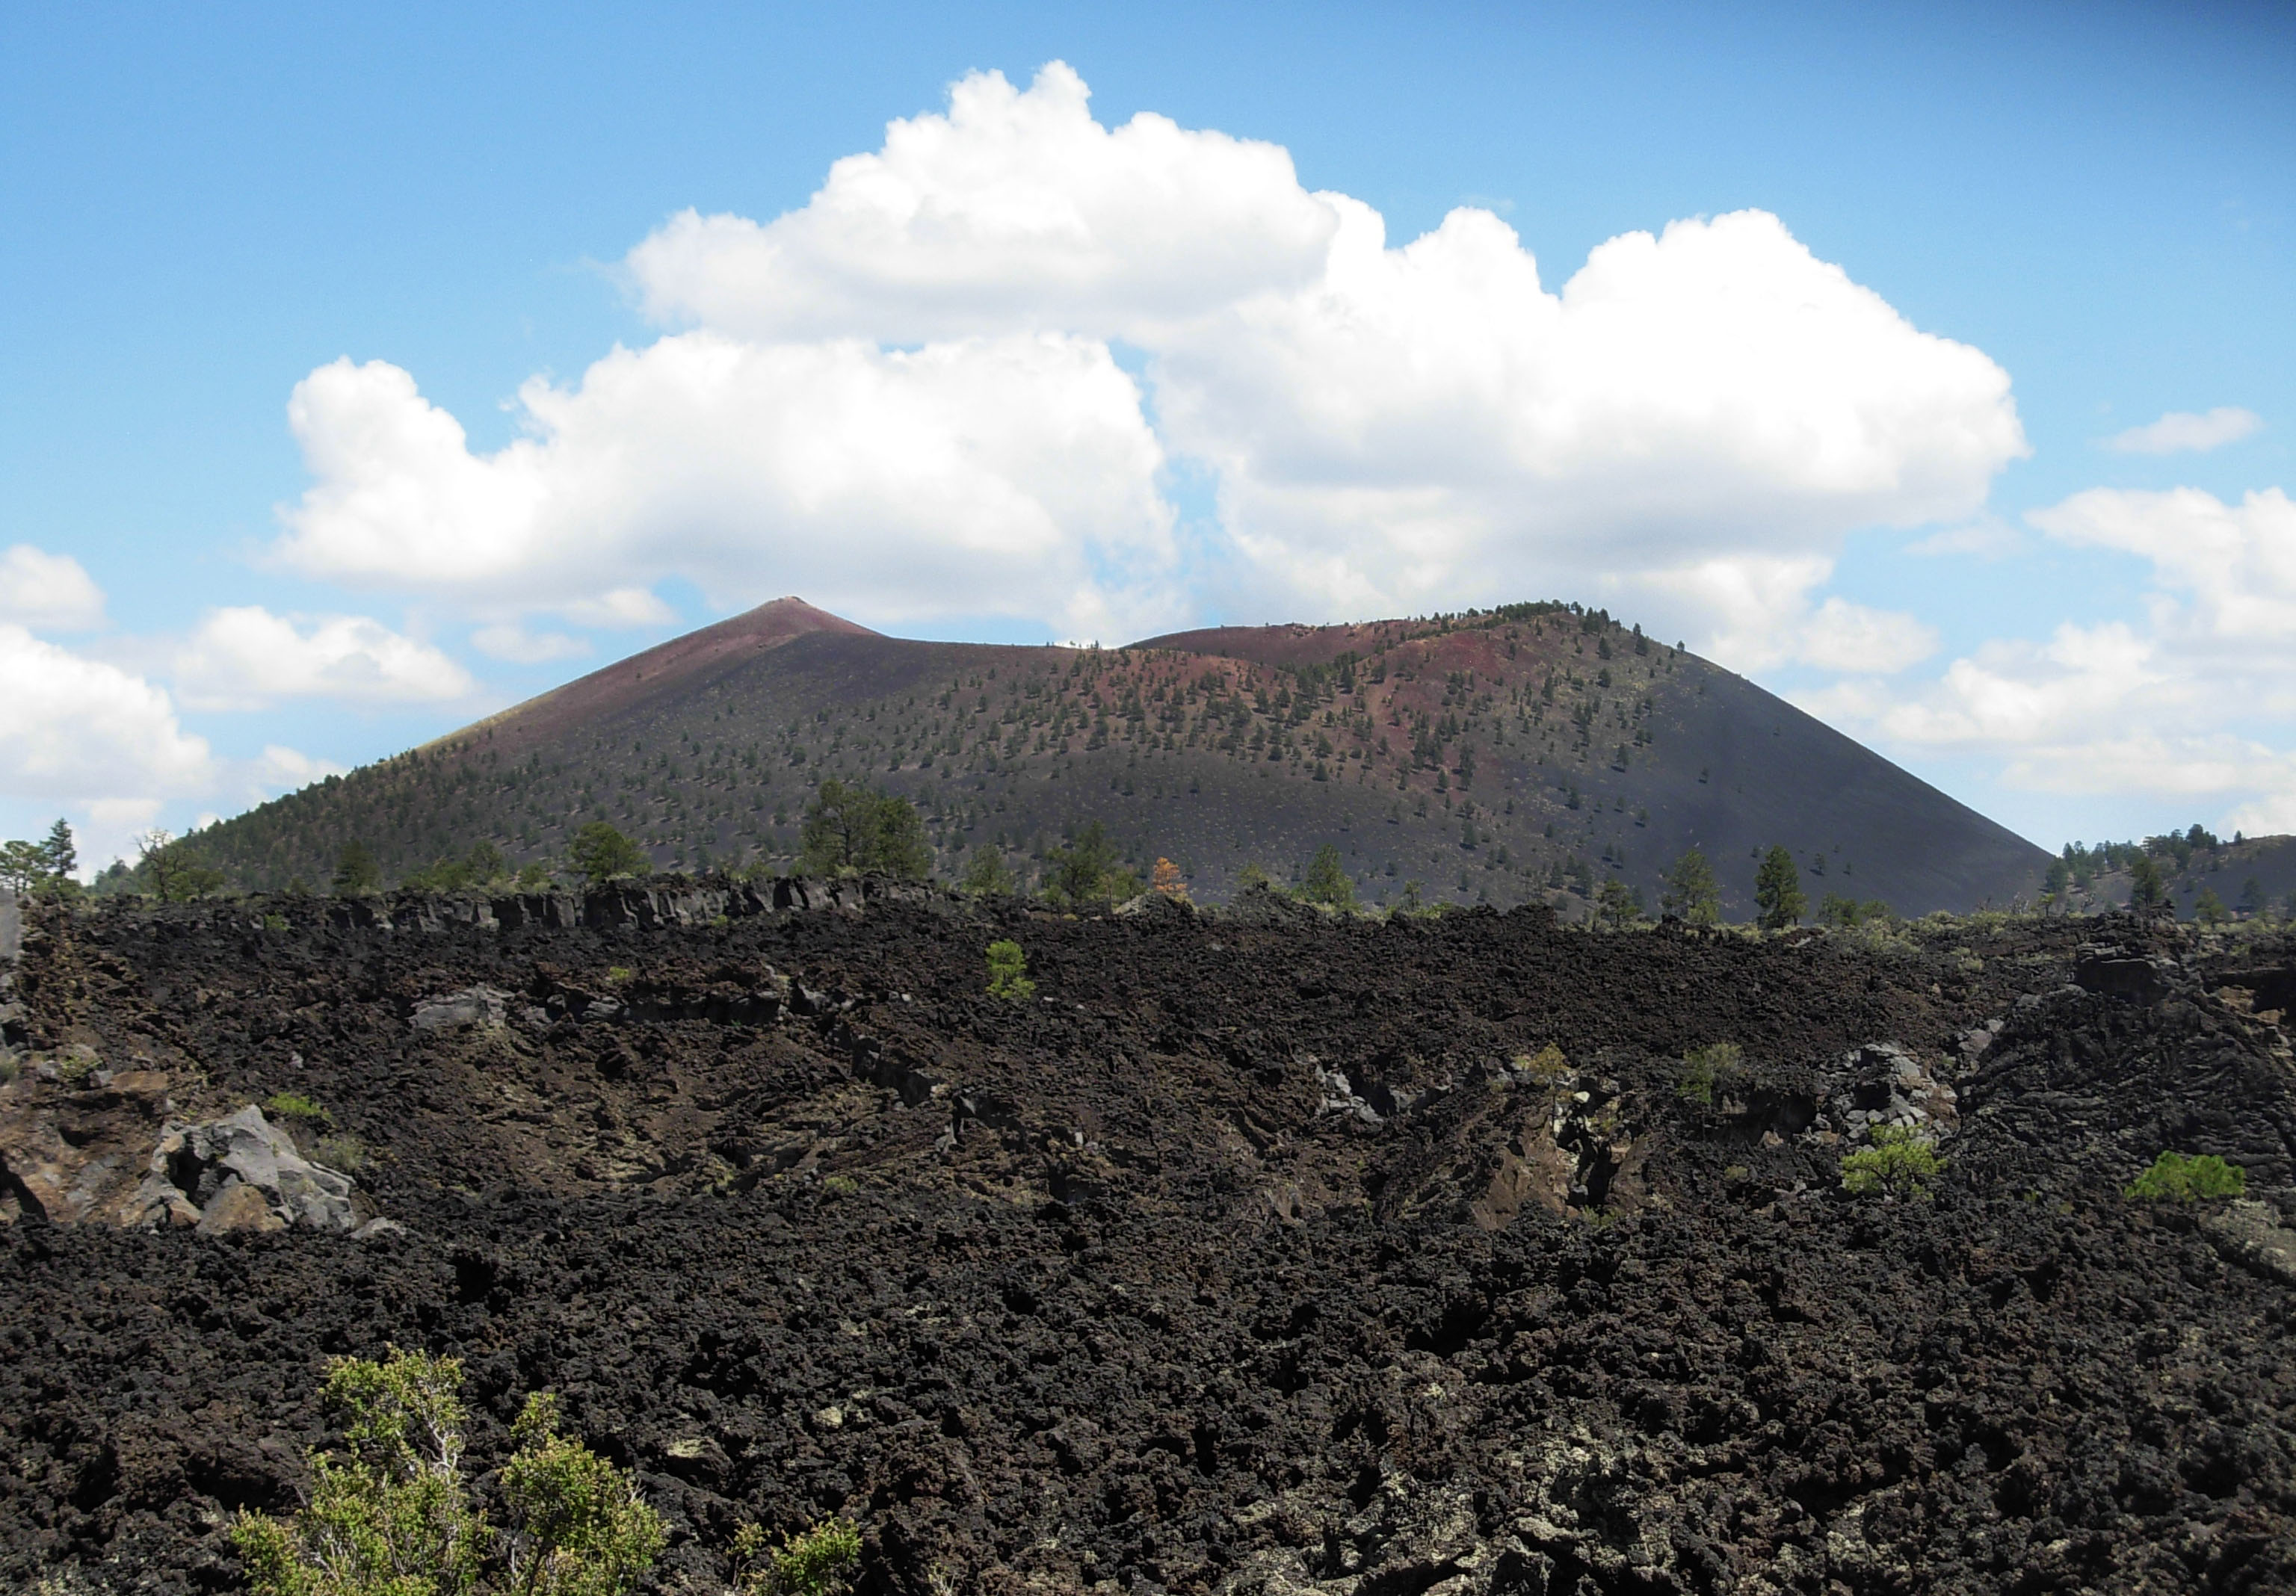 Sunset Crater is a cinder cone